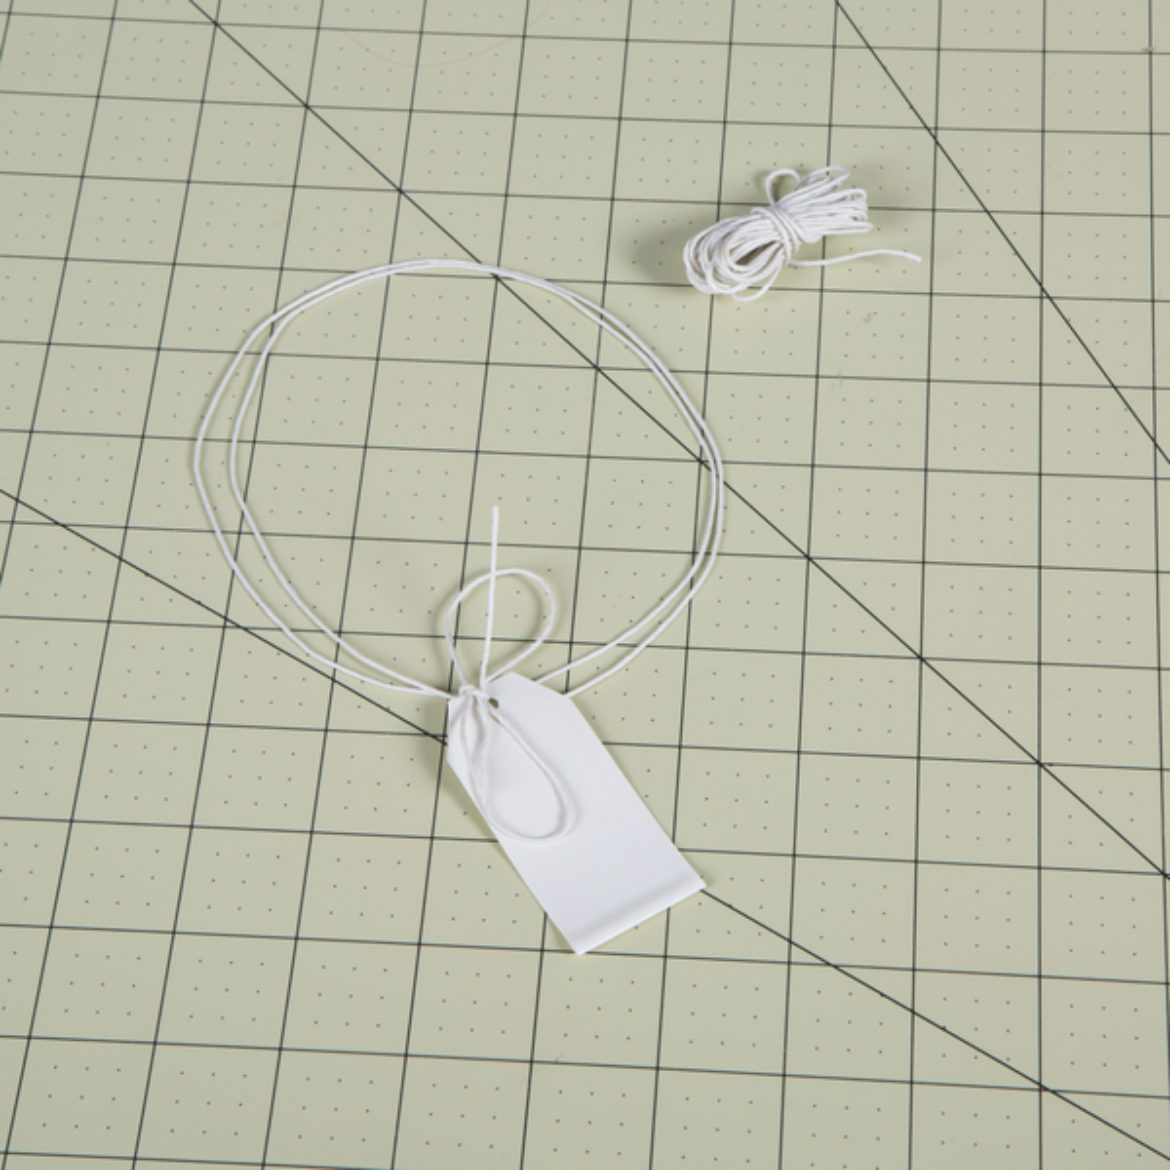 string running through a hole cut into the Duck Tape tag made in the previous step